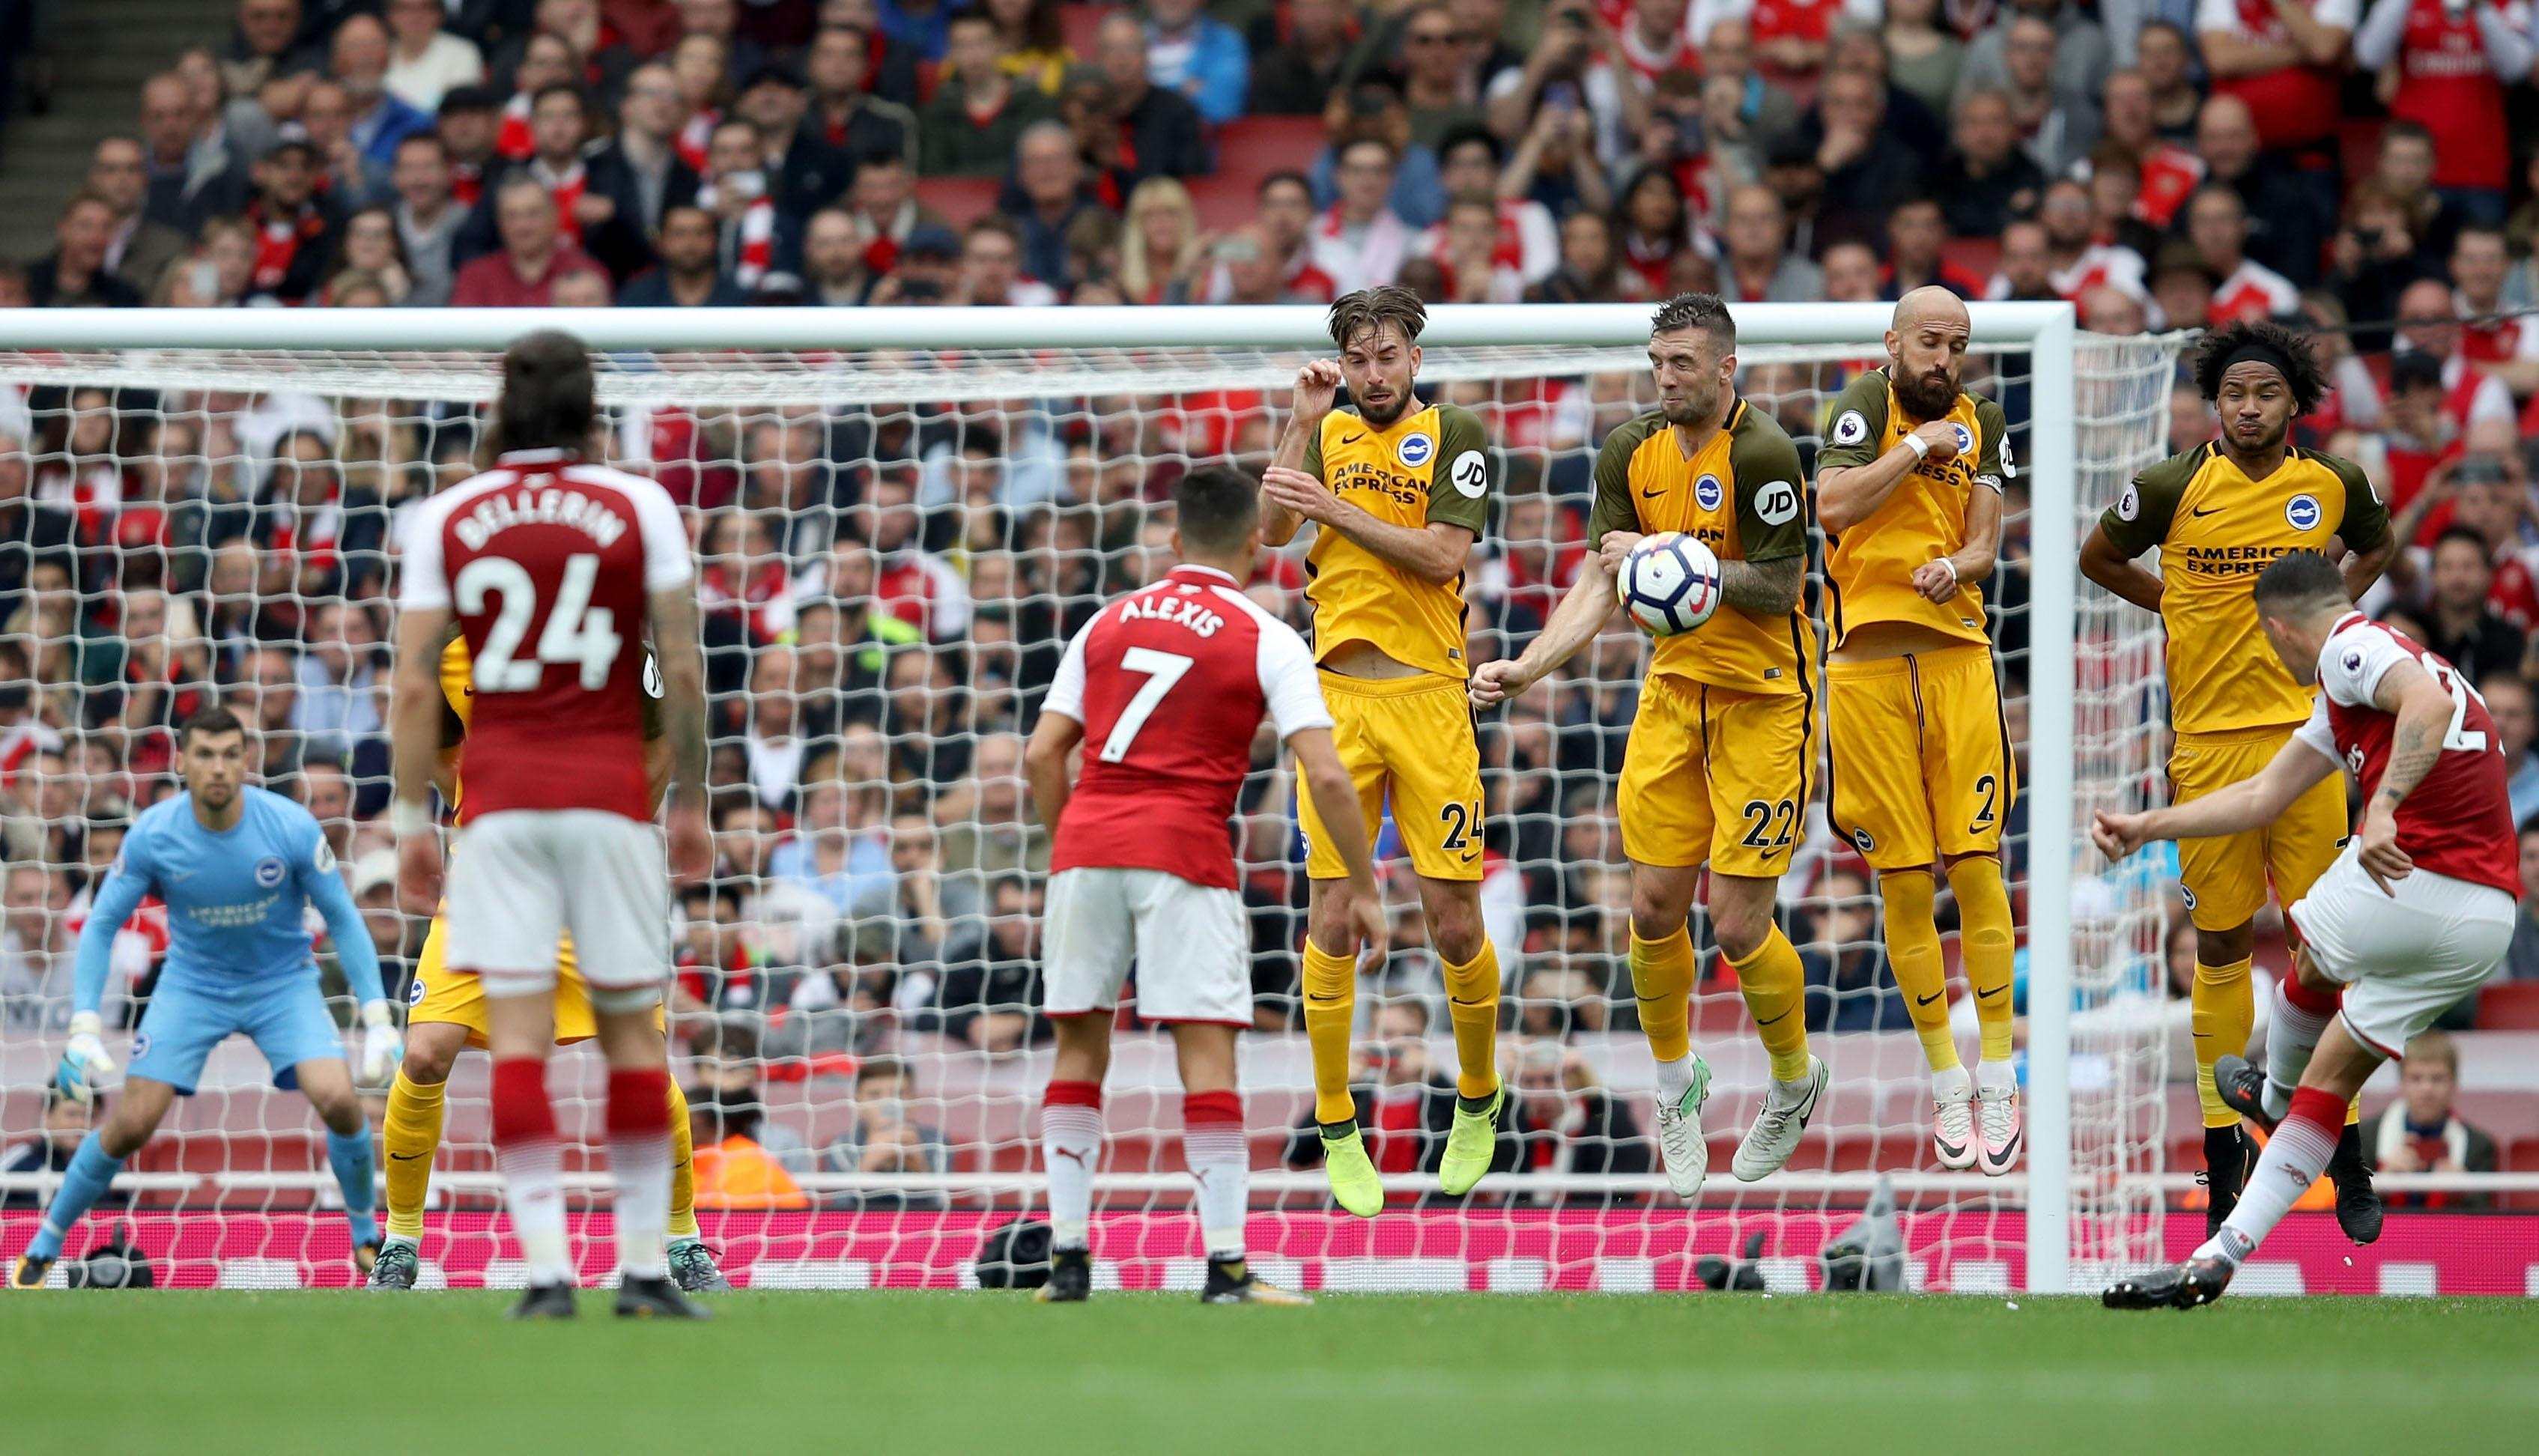 arsenal vs brighton - photo #37